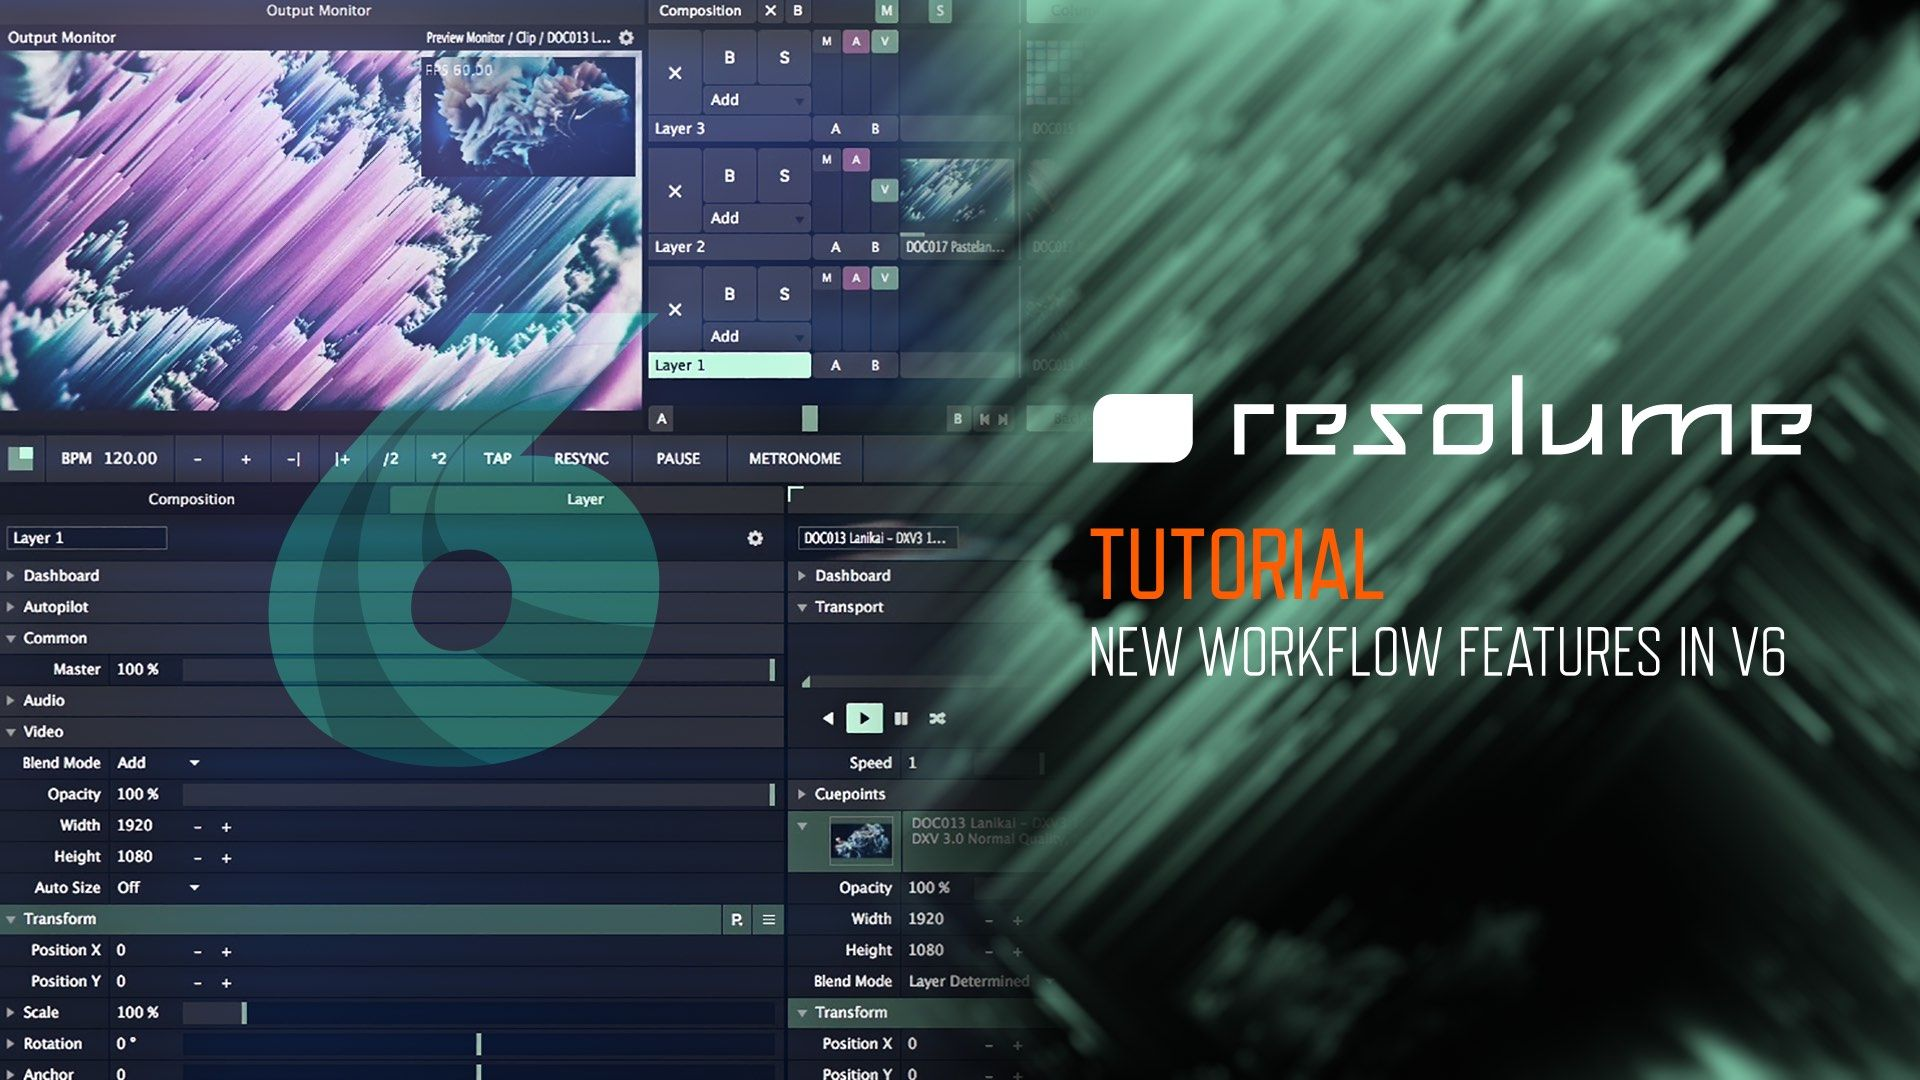 Resolume 6 Tutorial - New Workflow Features